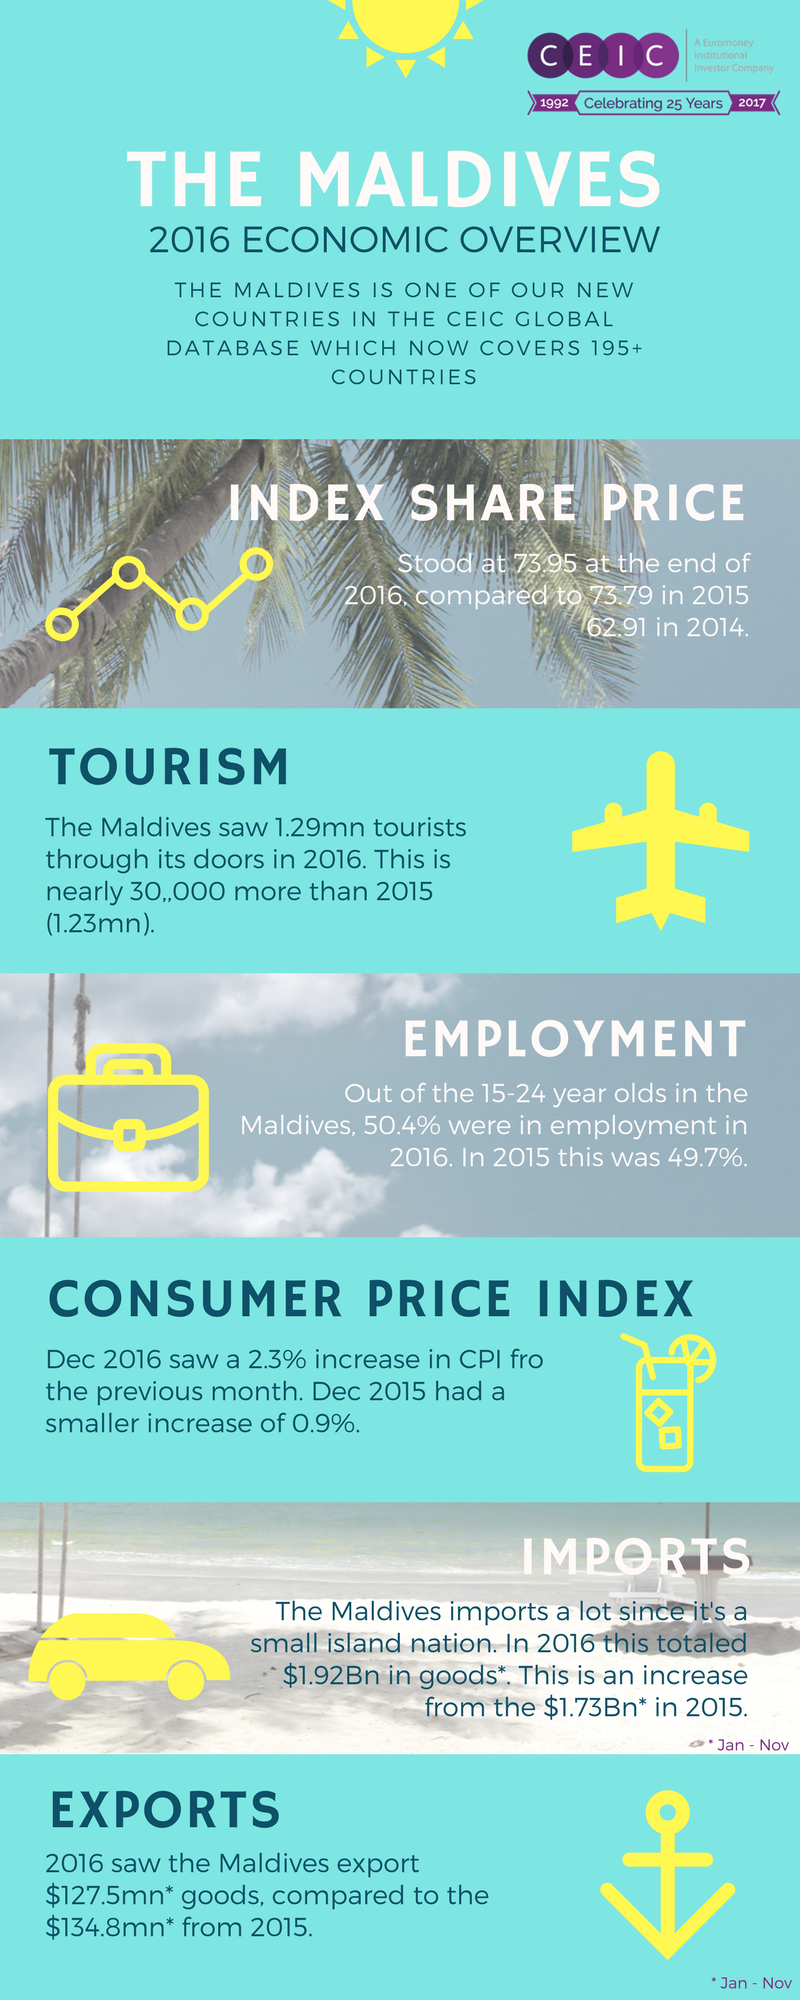 The Maldives Economy 2016